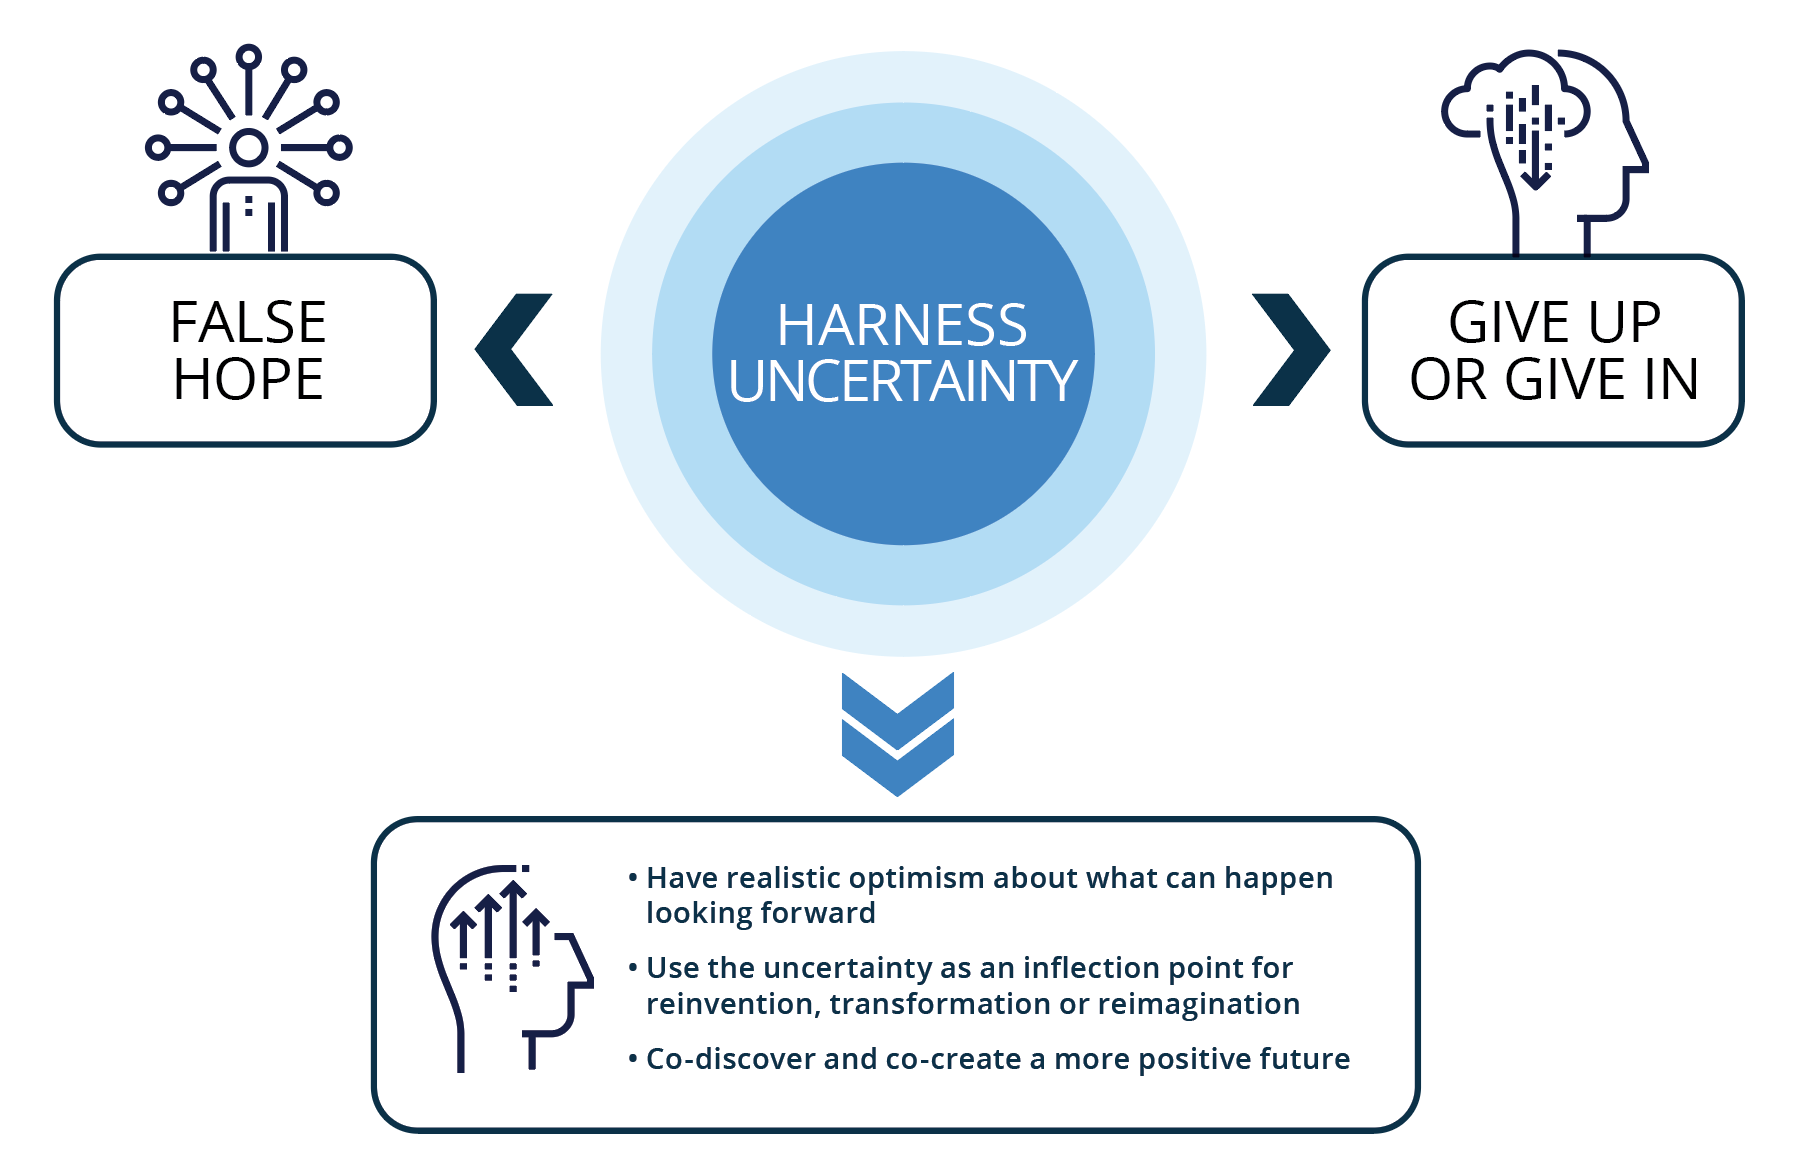 Responses to Uncertainty: Harness Uncertainty